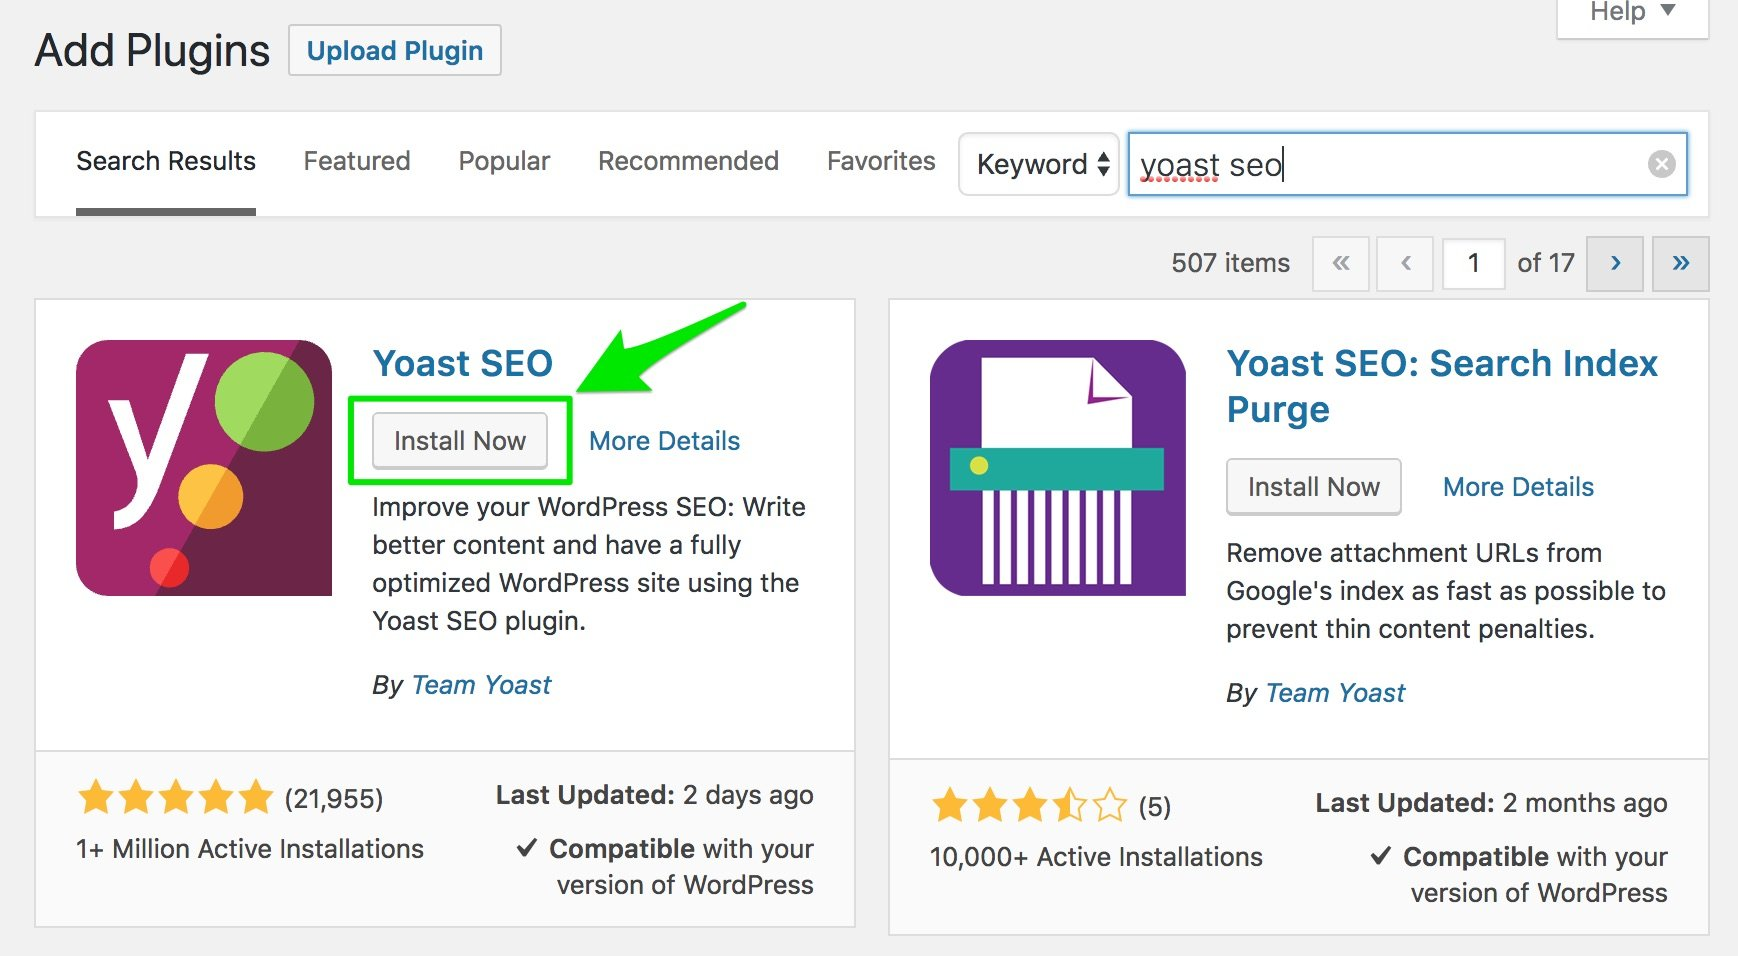 yoast seo tutorial 2016